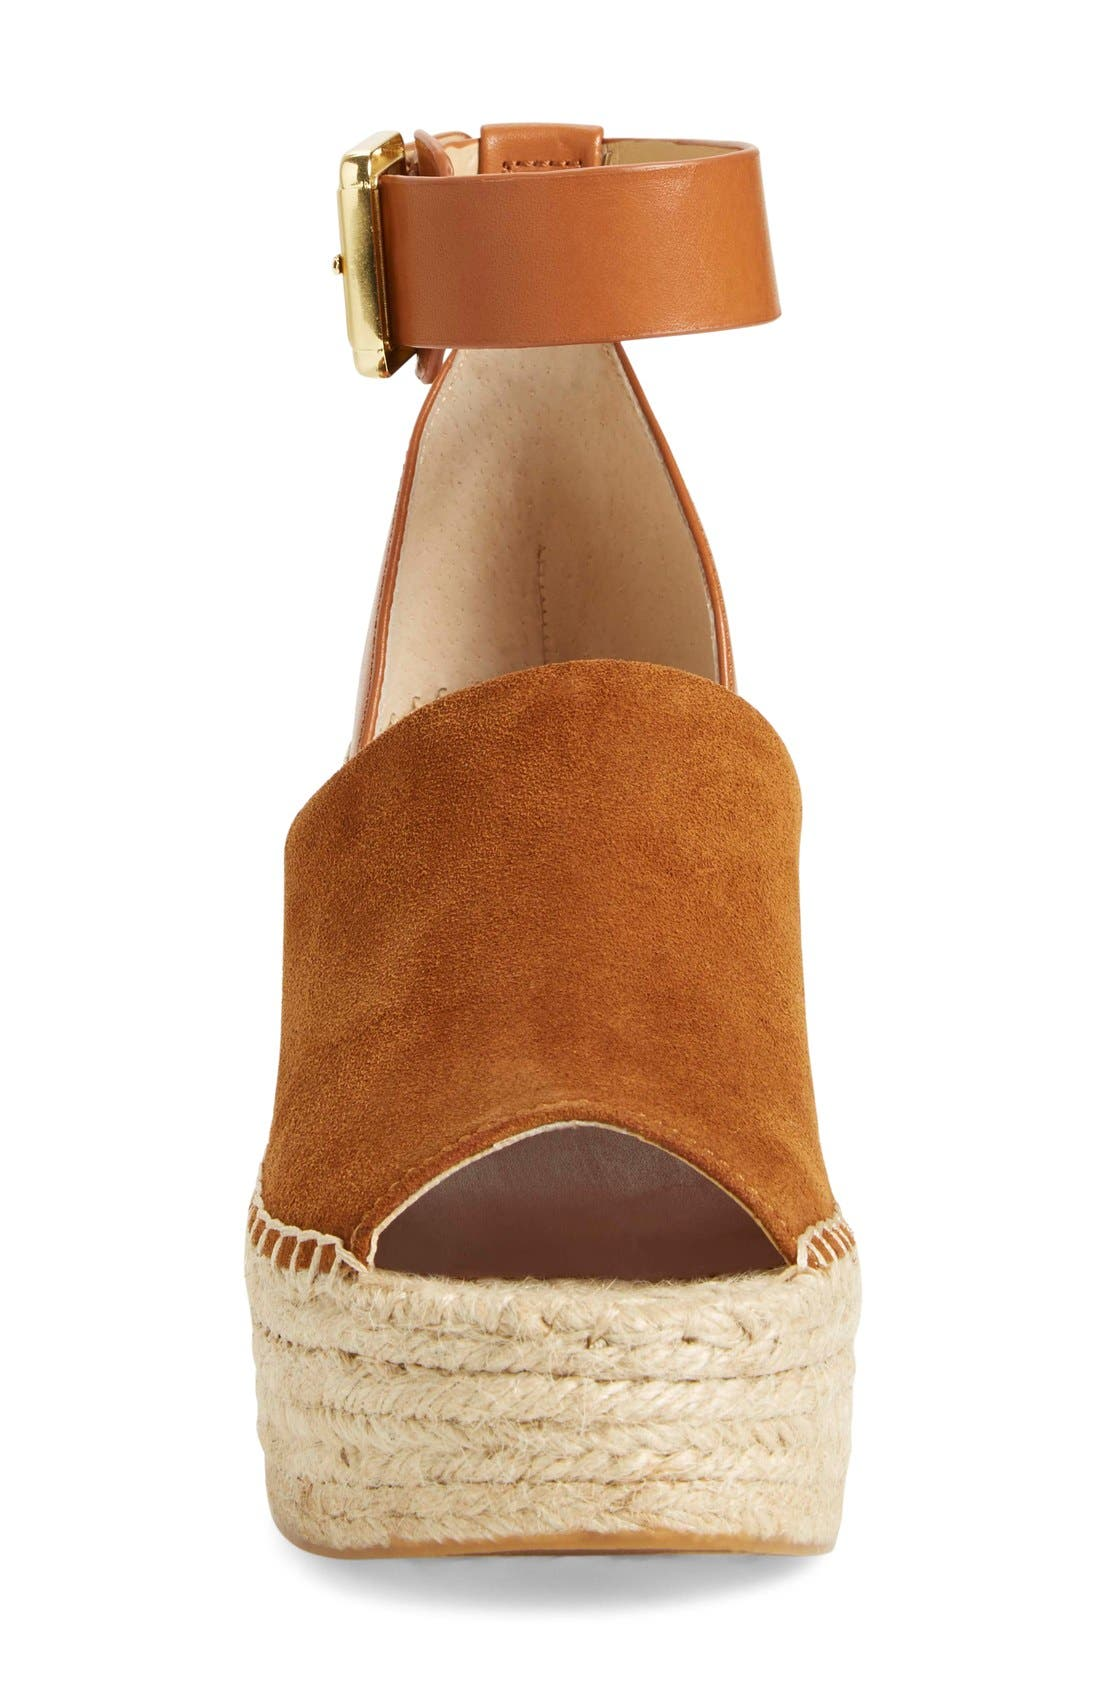 'Adalyn' Espadrille Wedge Sandal,                             Alternate thumbnail 3, color,                             Tan/ Saddle